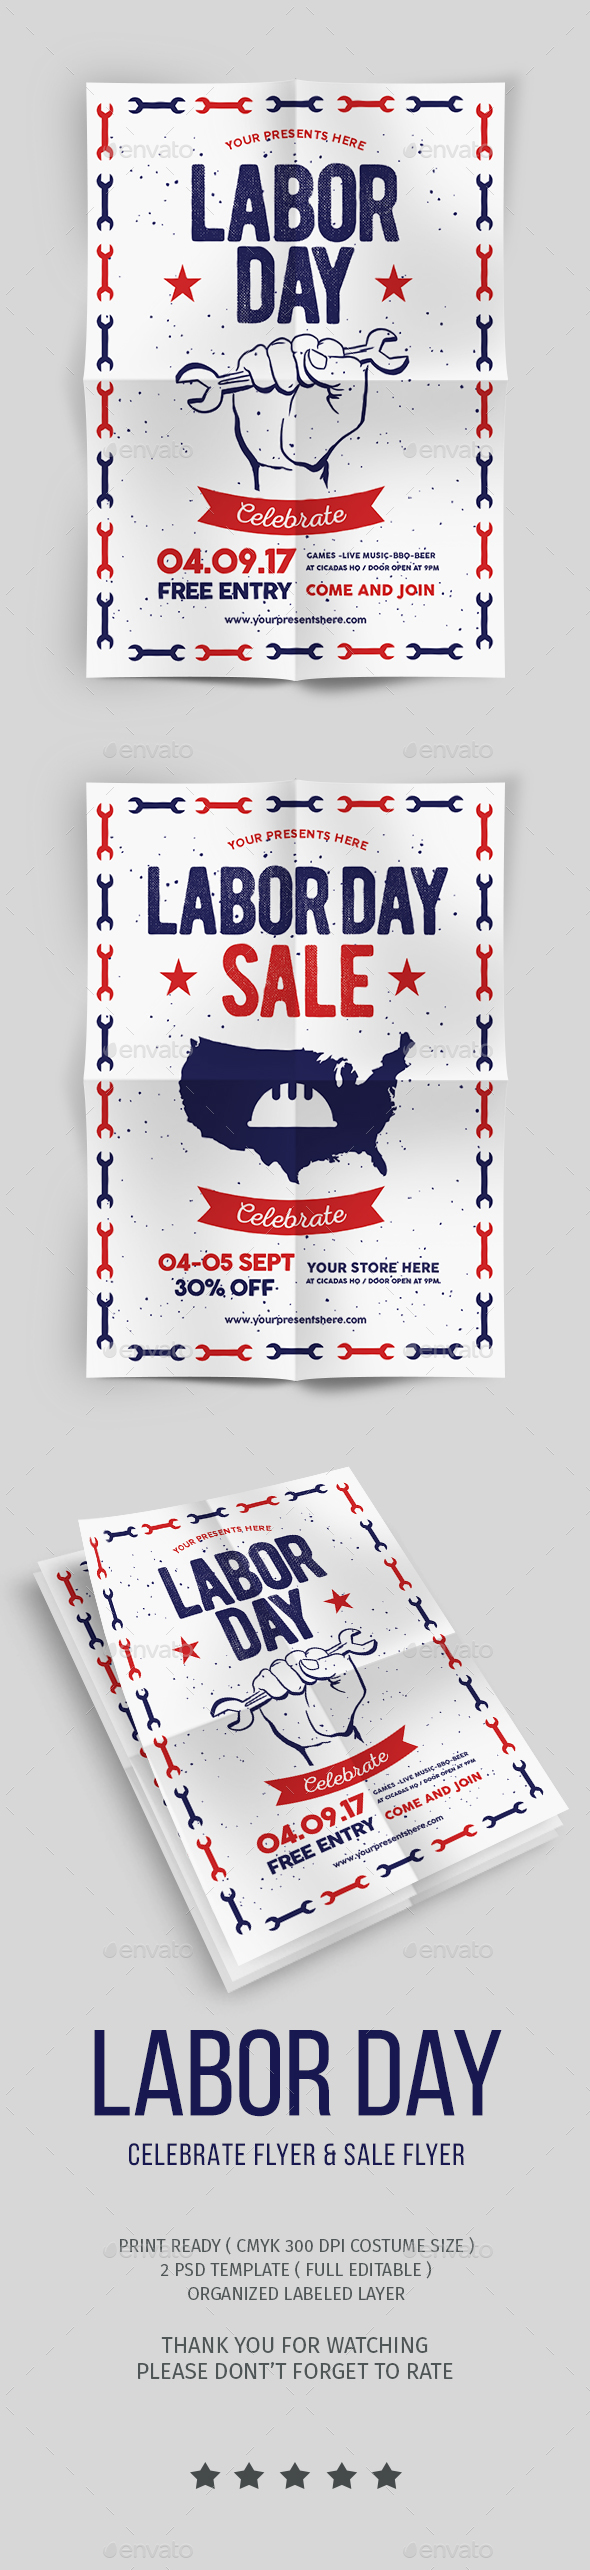 Labor Day Flyer & labor Day Sale Flyer - Events Flyers